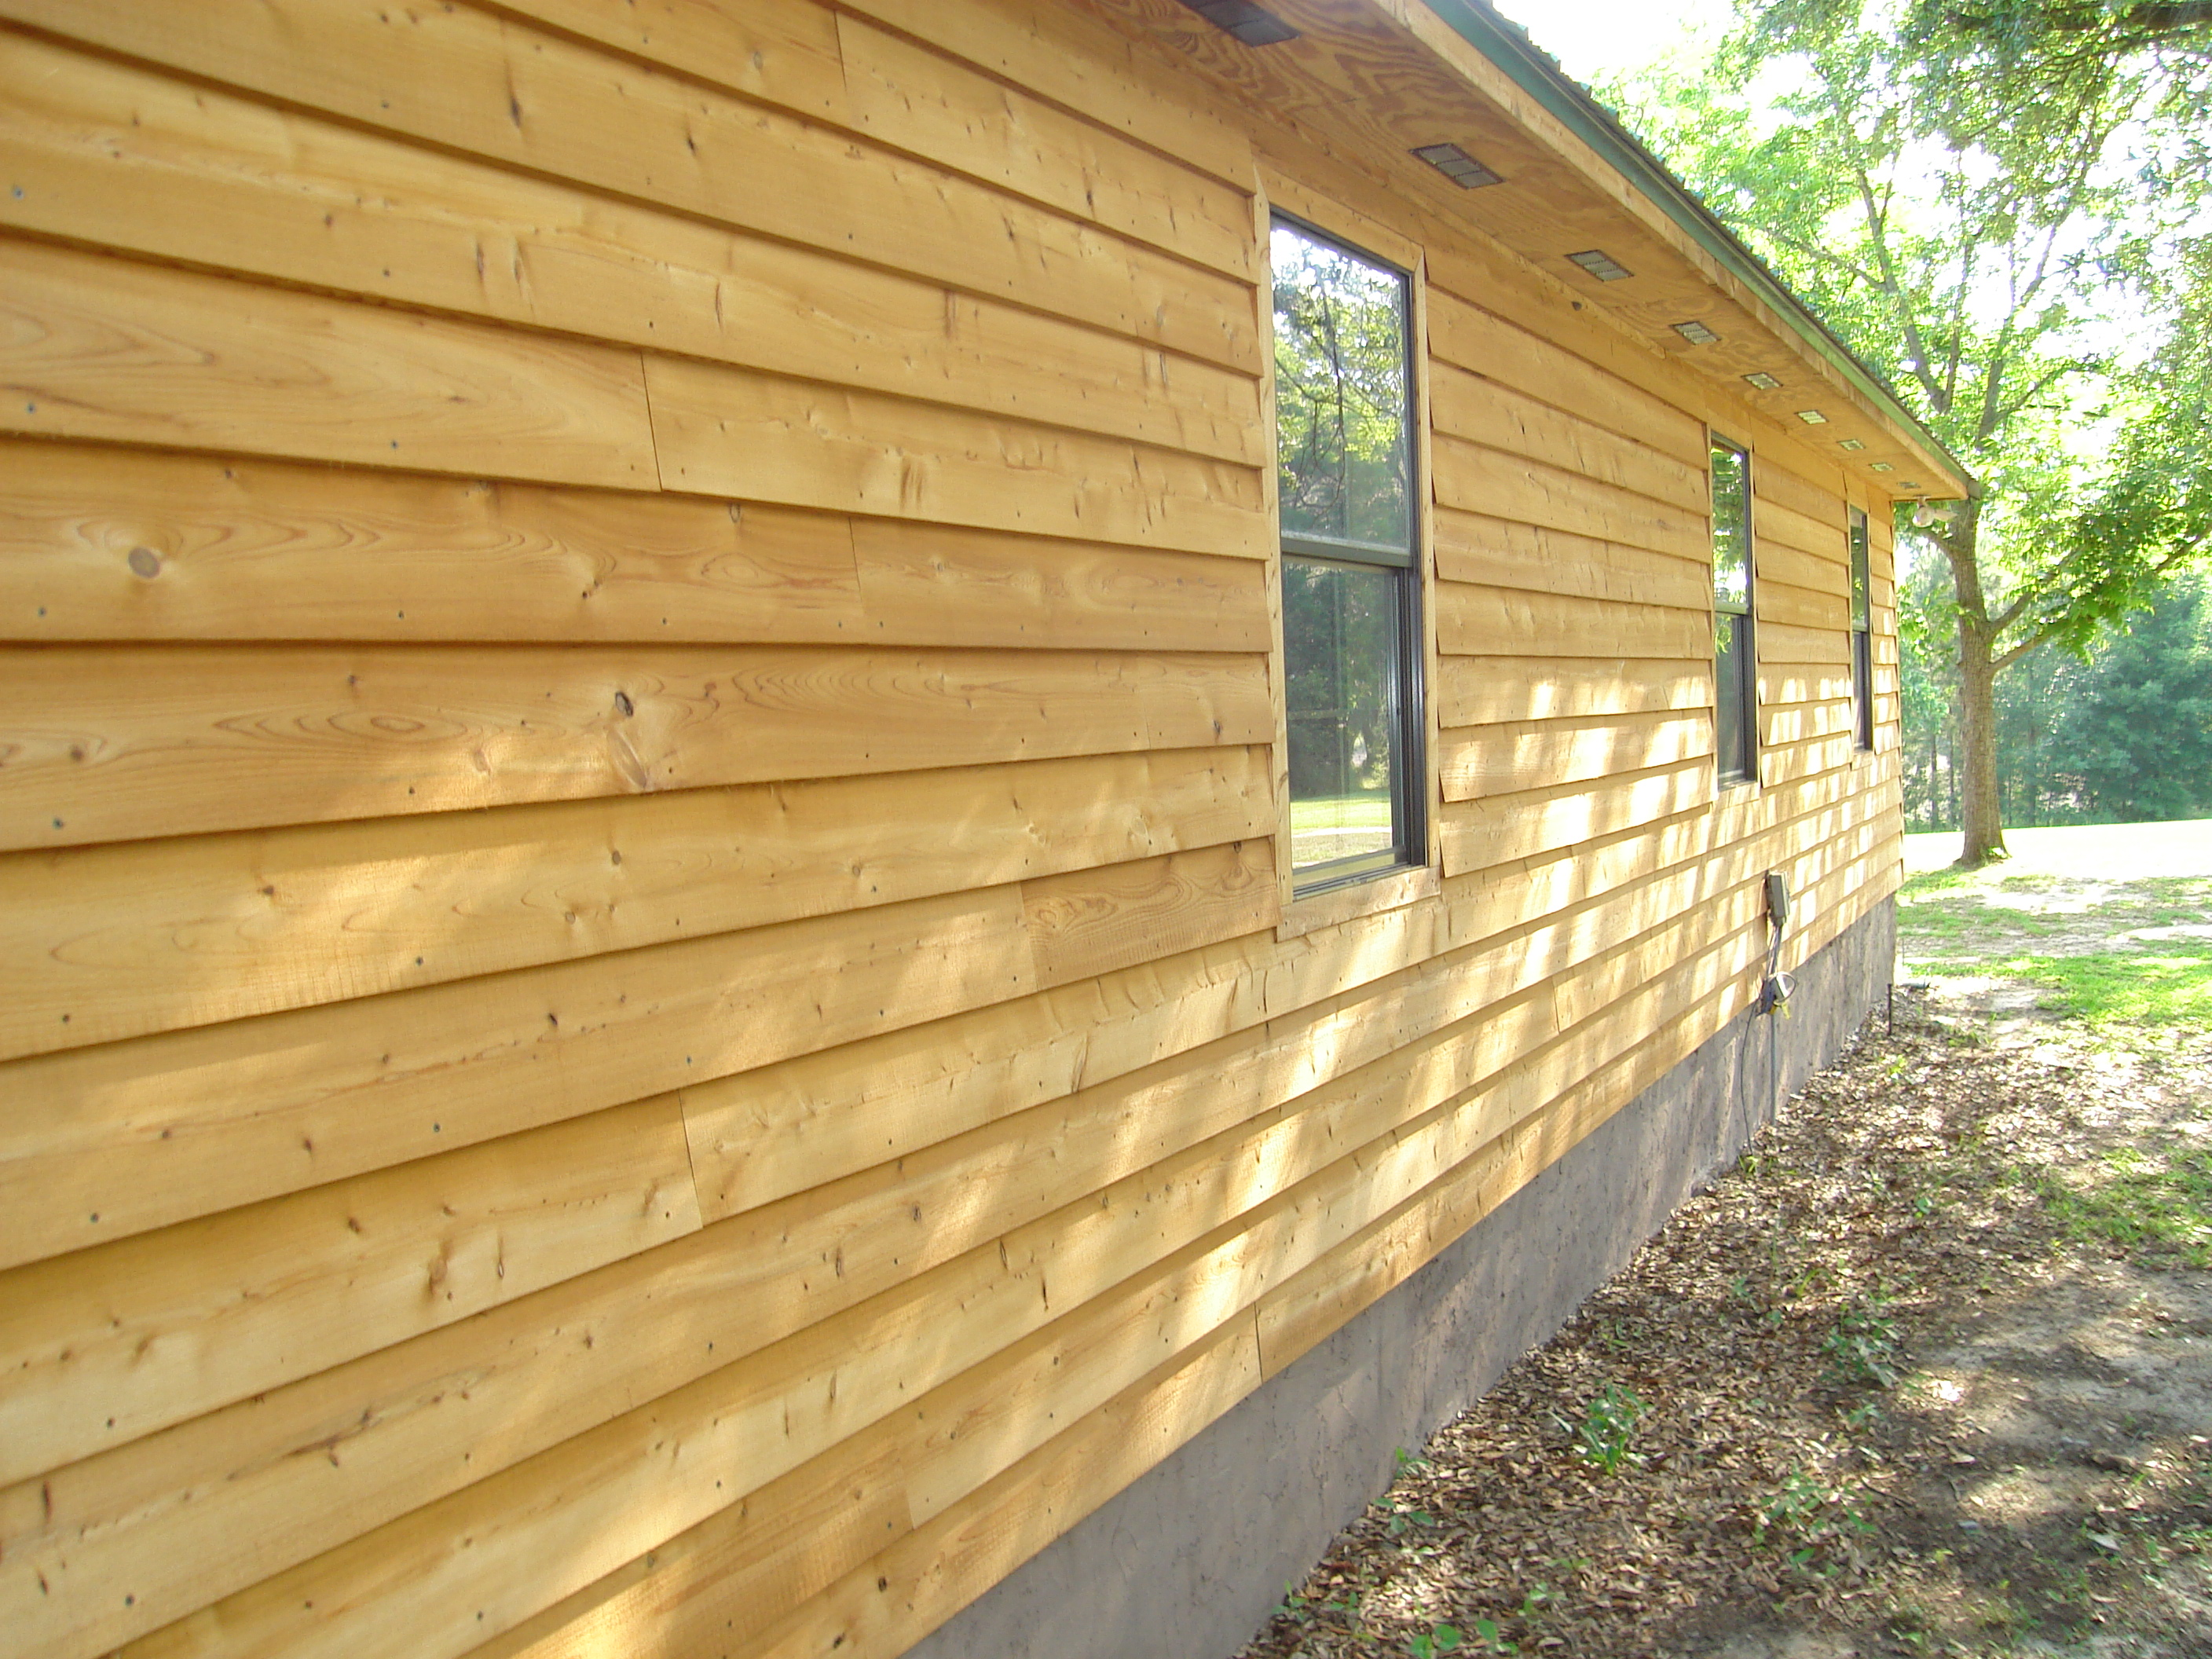 Virginia roofing siding company wood siding for Natural wood siding